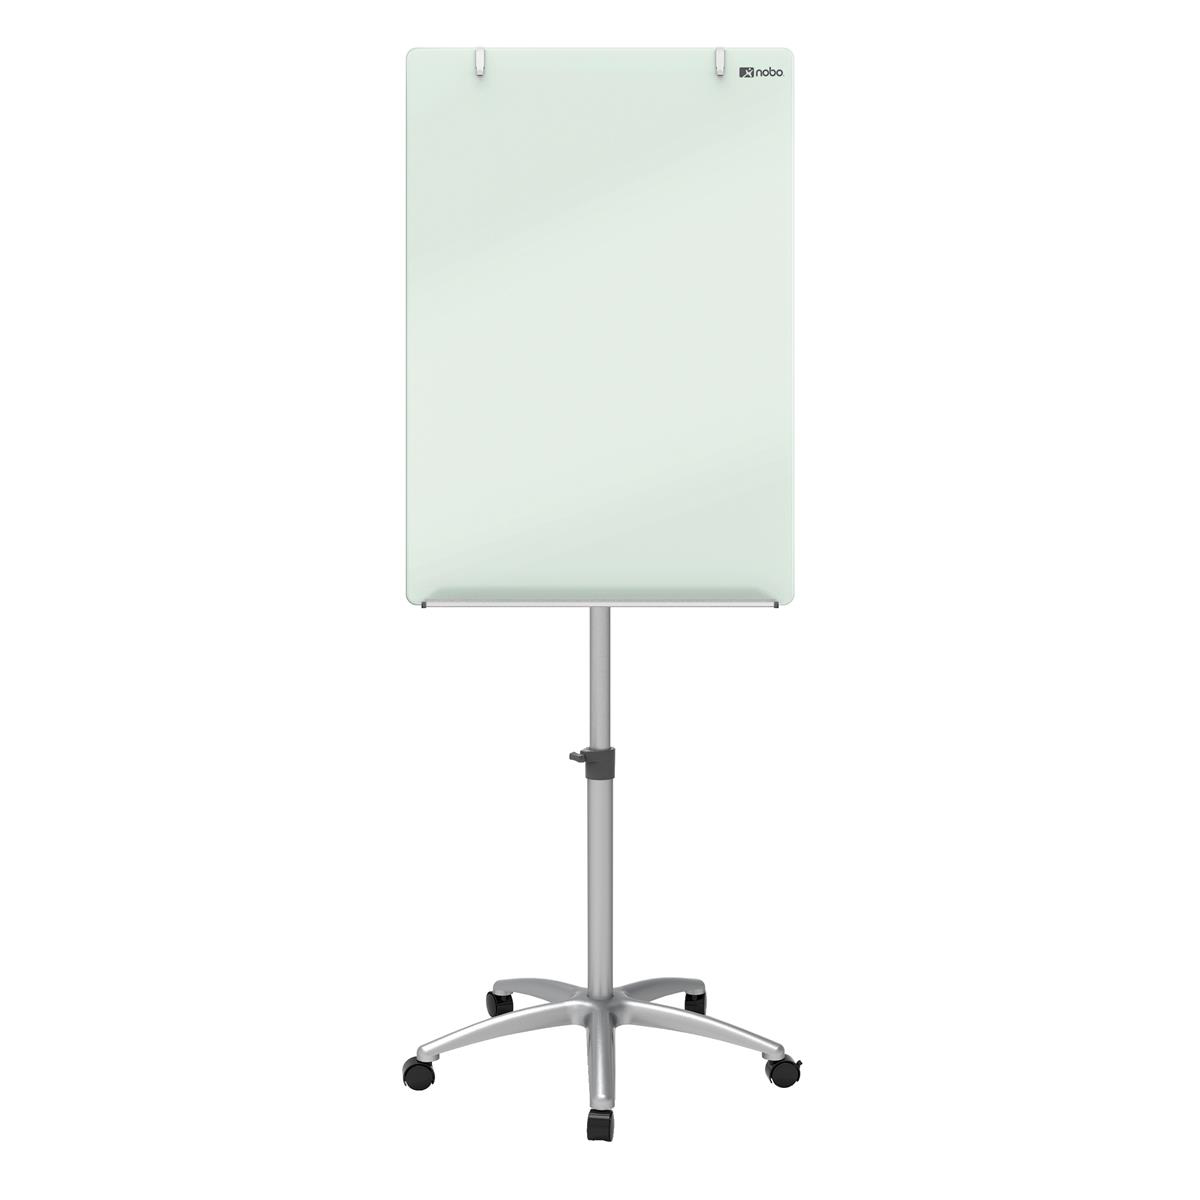 Nobo Diamond Mobile Easel Glass 700x1000mm Ref 1903949-